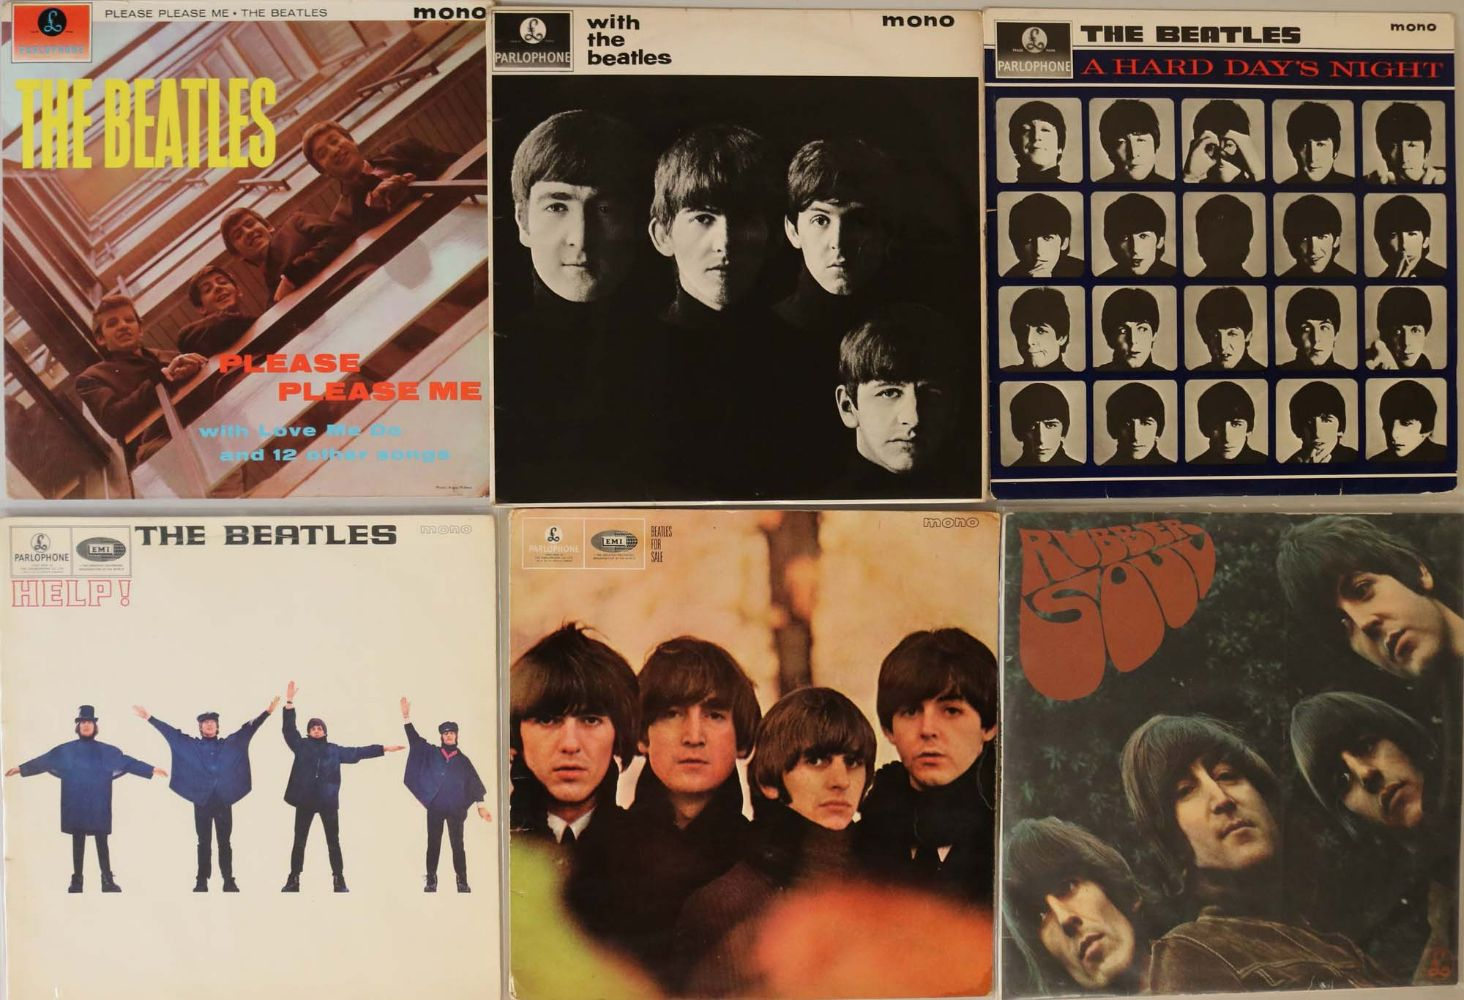 The Beatles Collection: Memorabilia & Vinyl Records